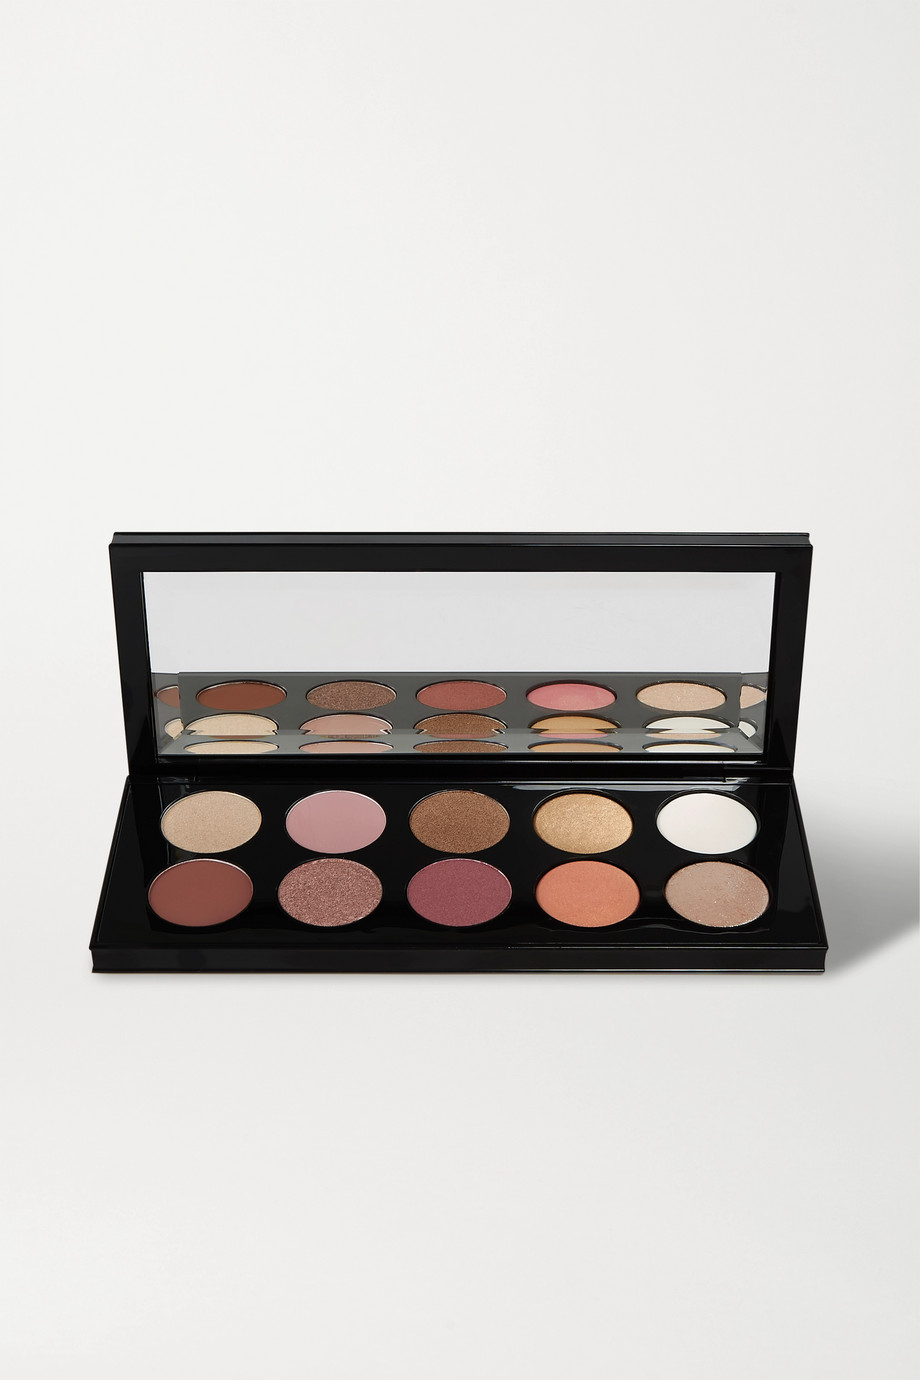 PAT MCGRATH LABS Mothership VII Eyeshadow Palette - Divine Rose